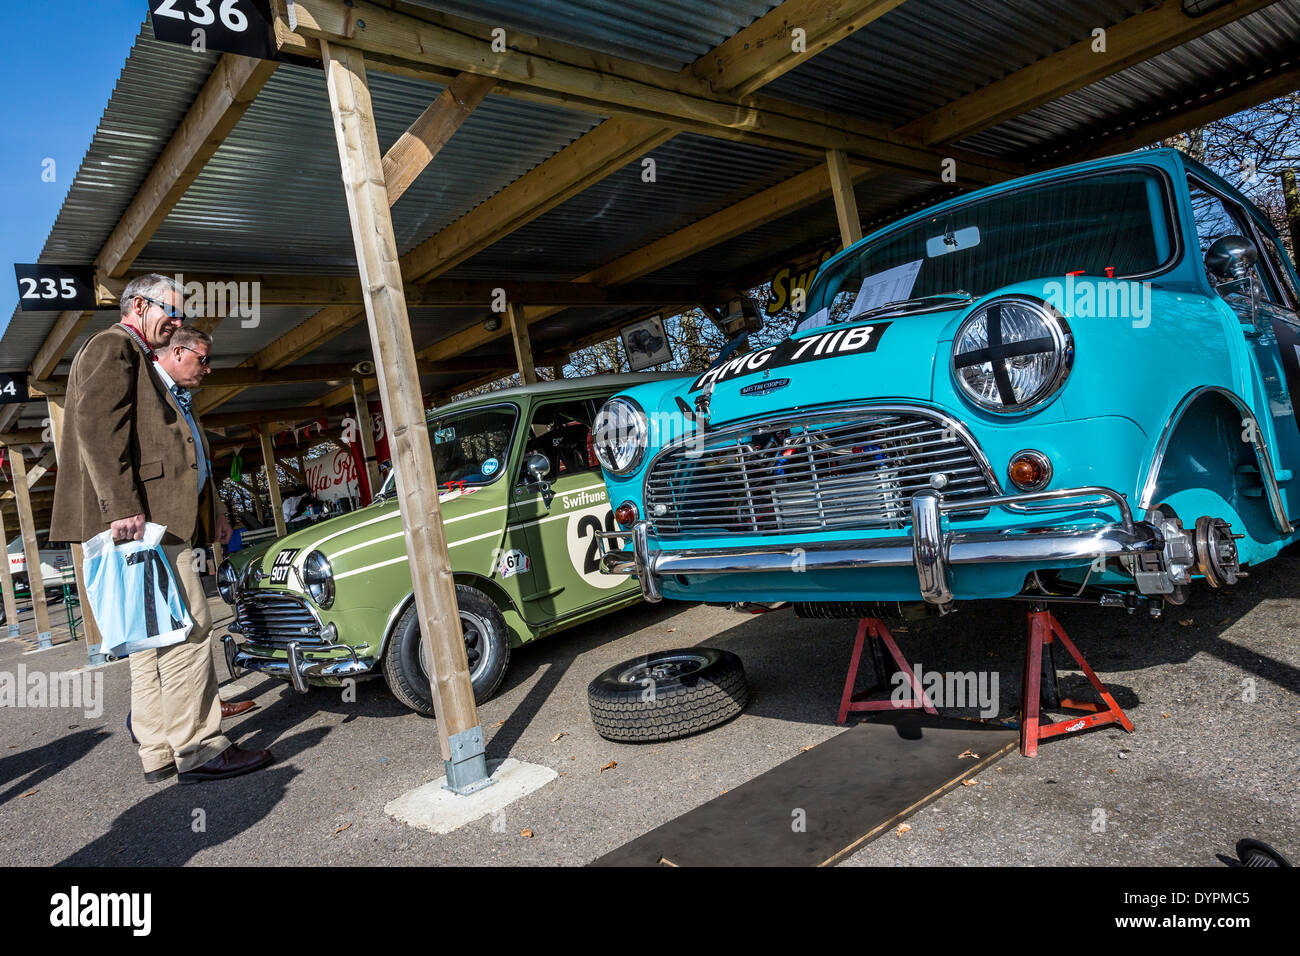 Morris and austin mini cooper s cars in the paddock garage for Garage mini cooper annemasse